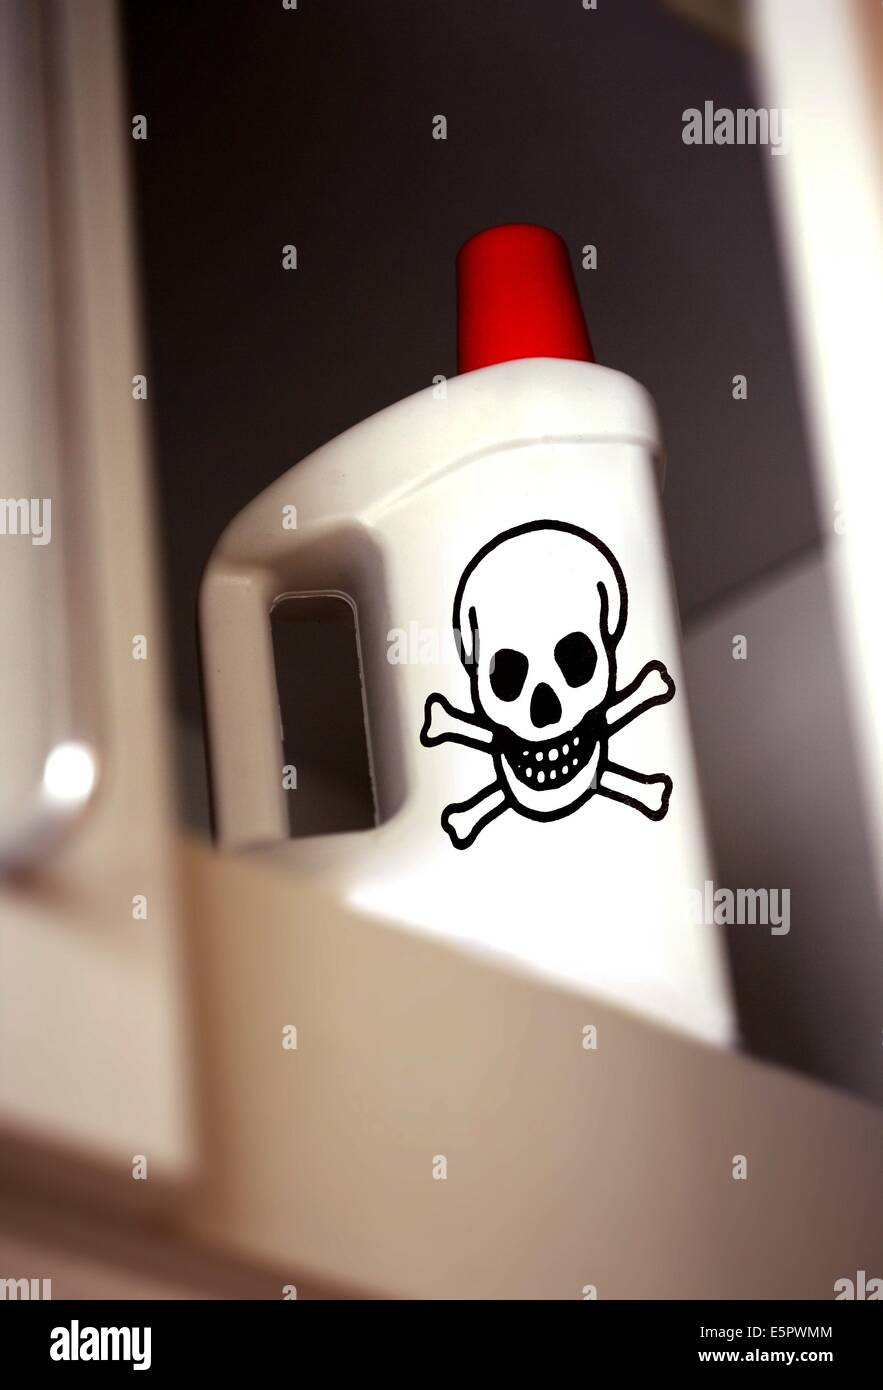 Toxicity of some cleaning products. - Stock Image